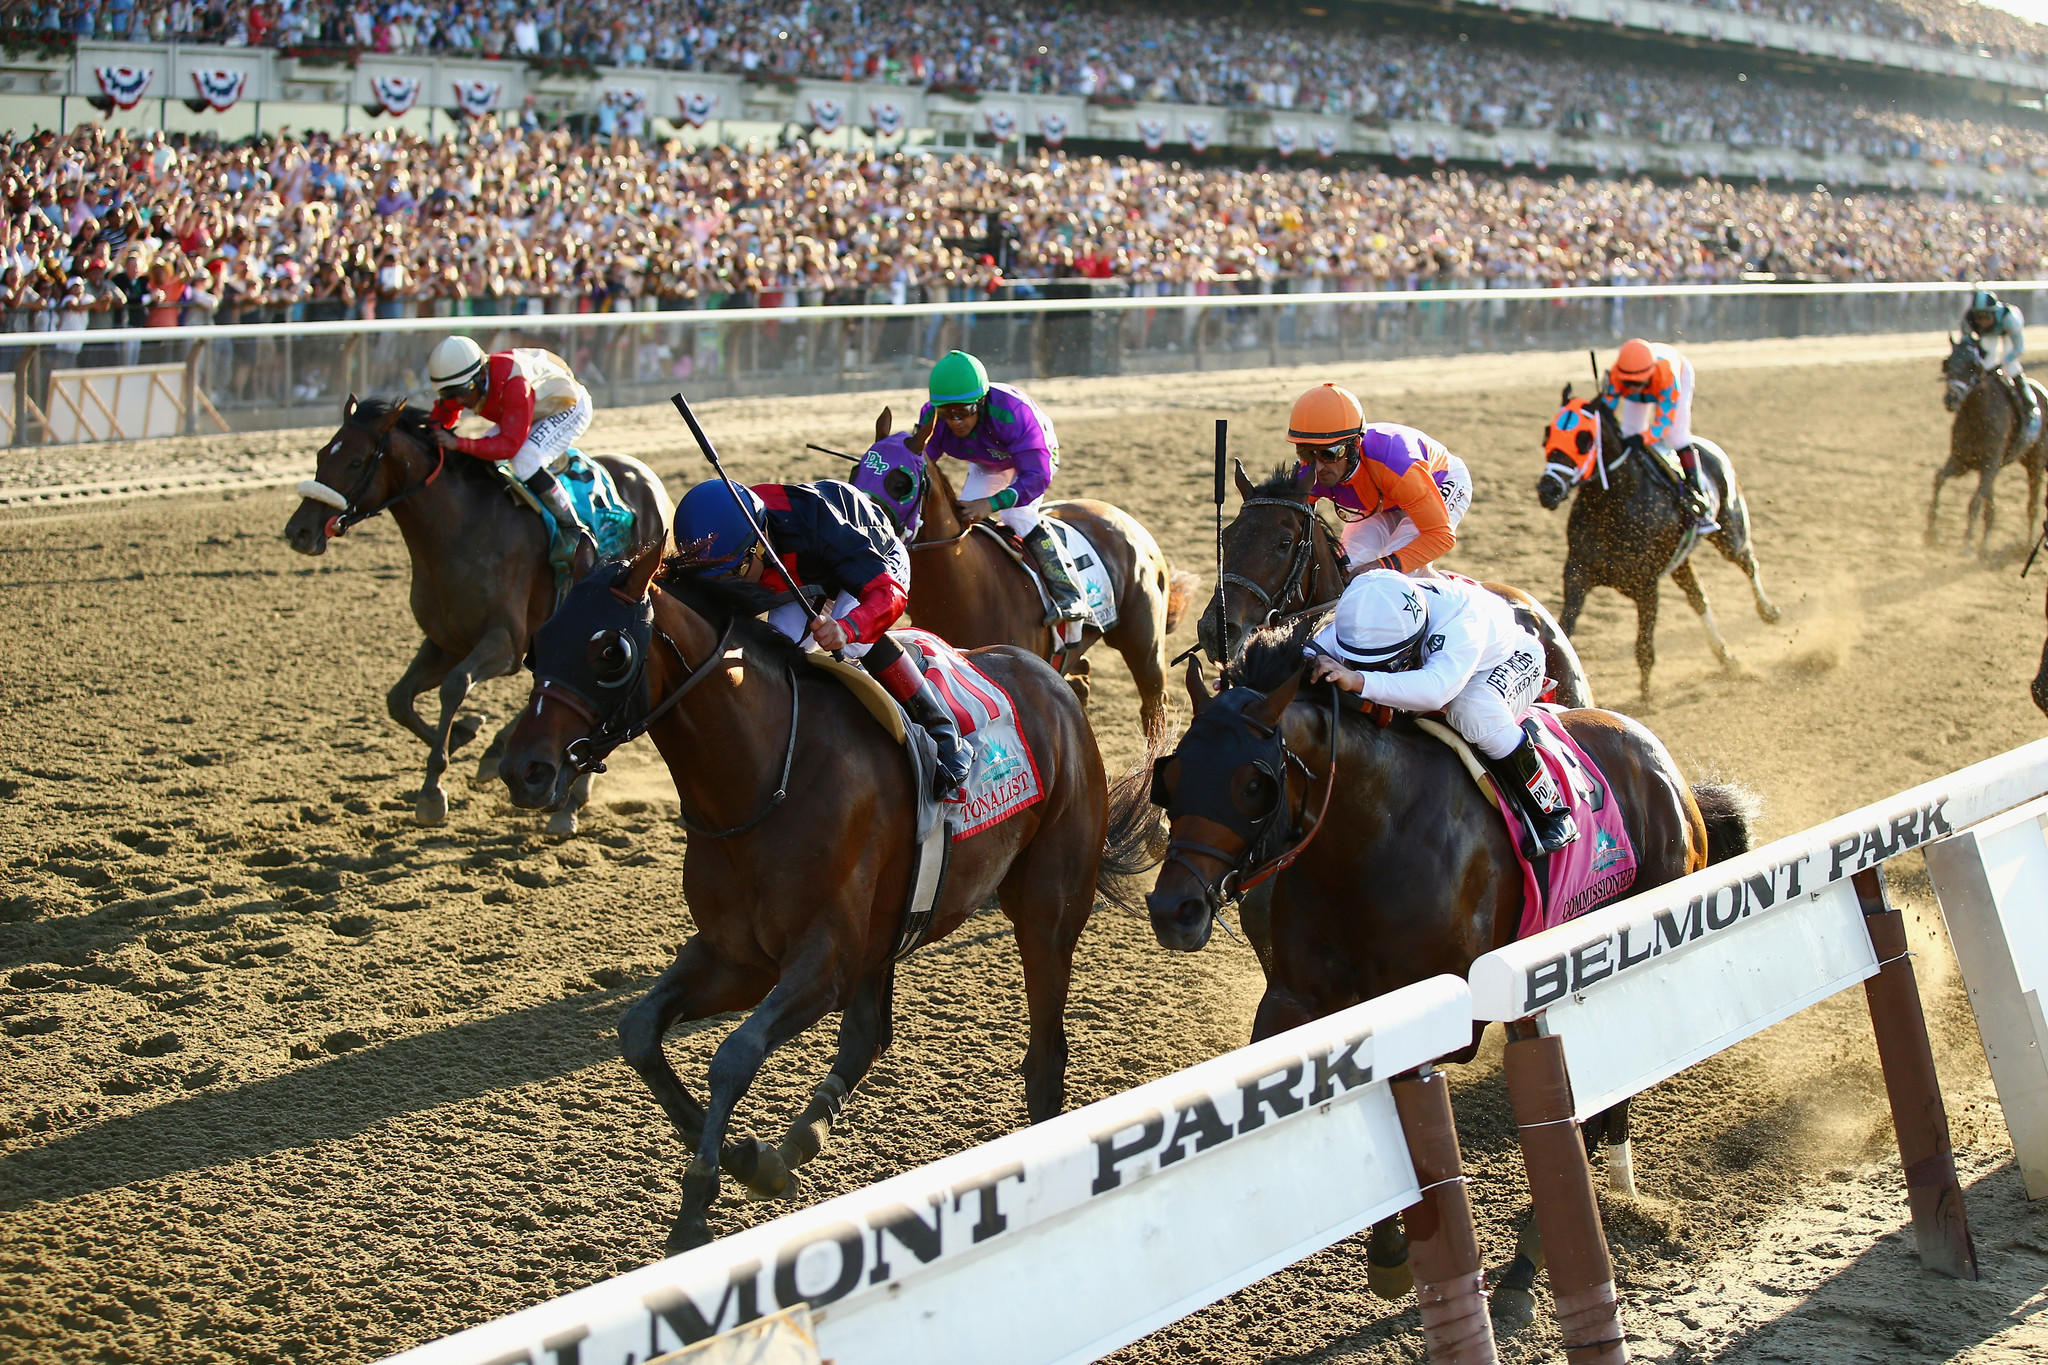 Tonalist, second from left, beats out California Chrome and the Belmont Stakes field for the third leg of the Triple Crown.